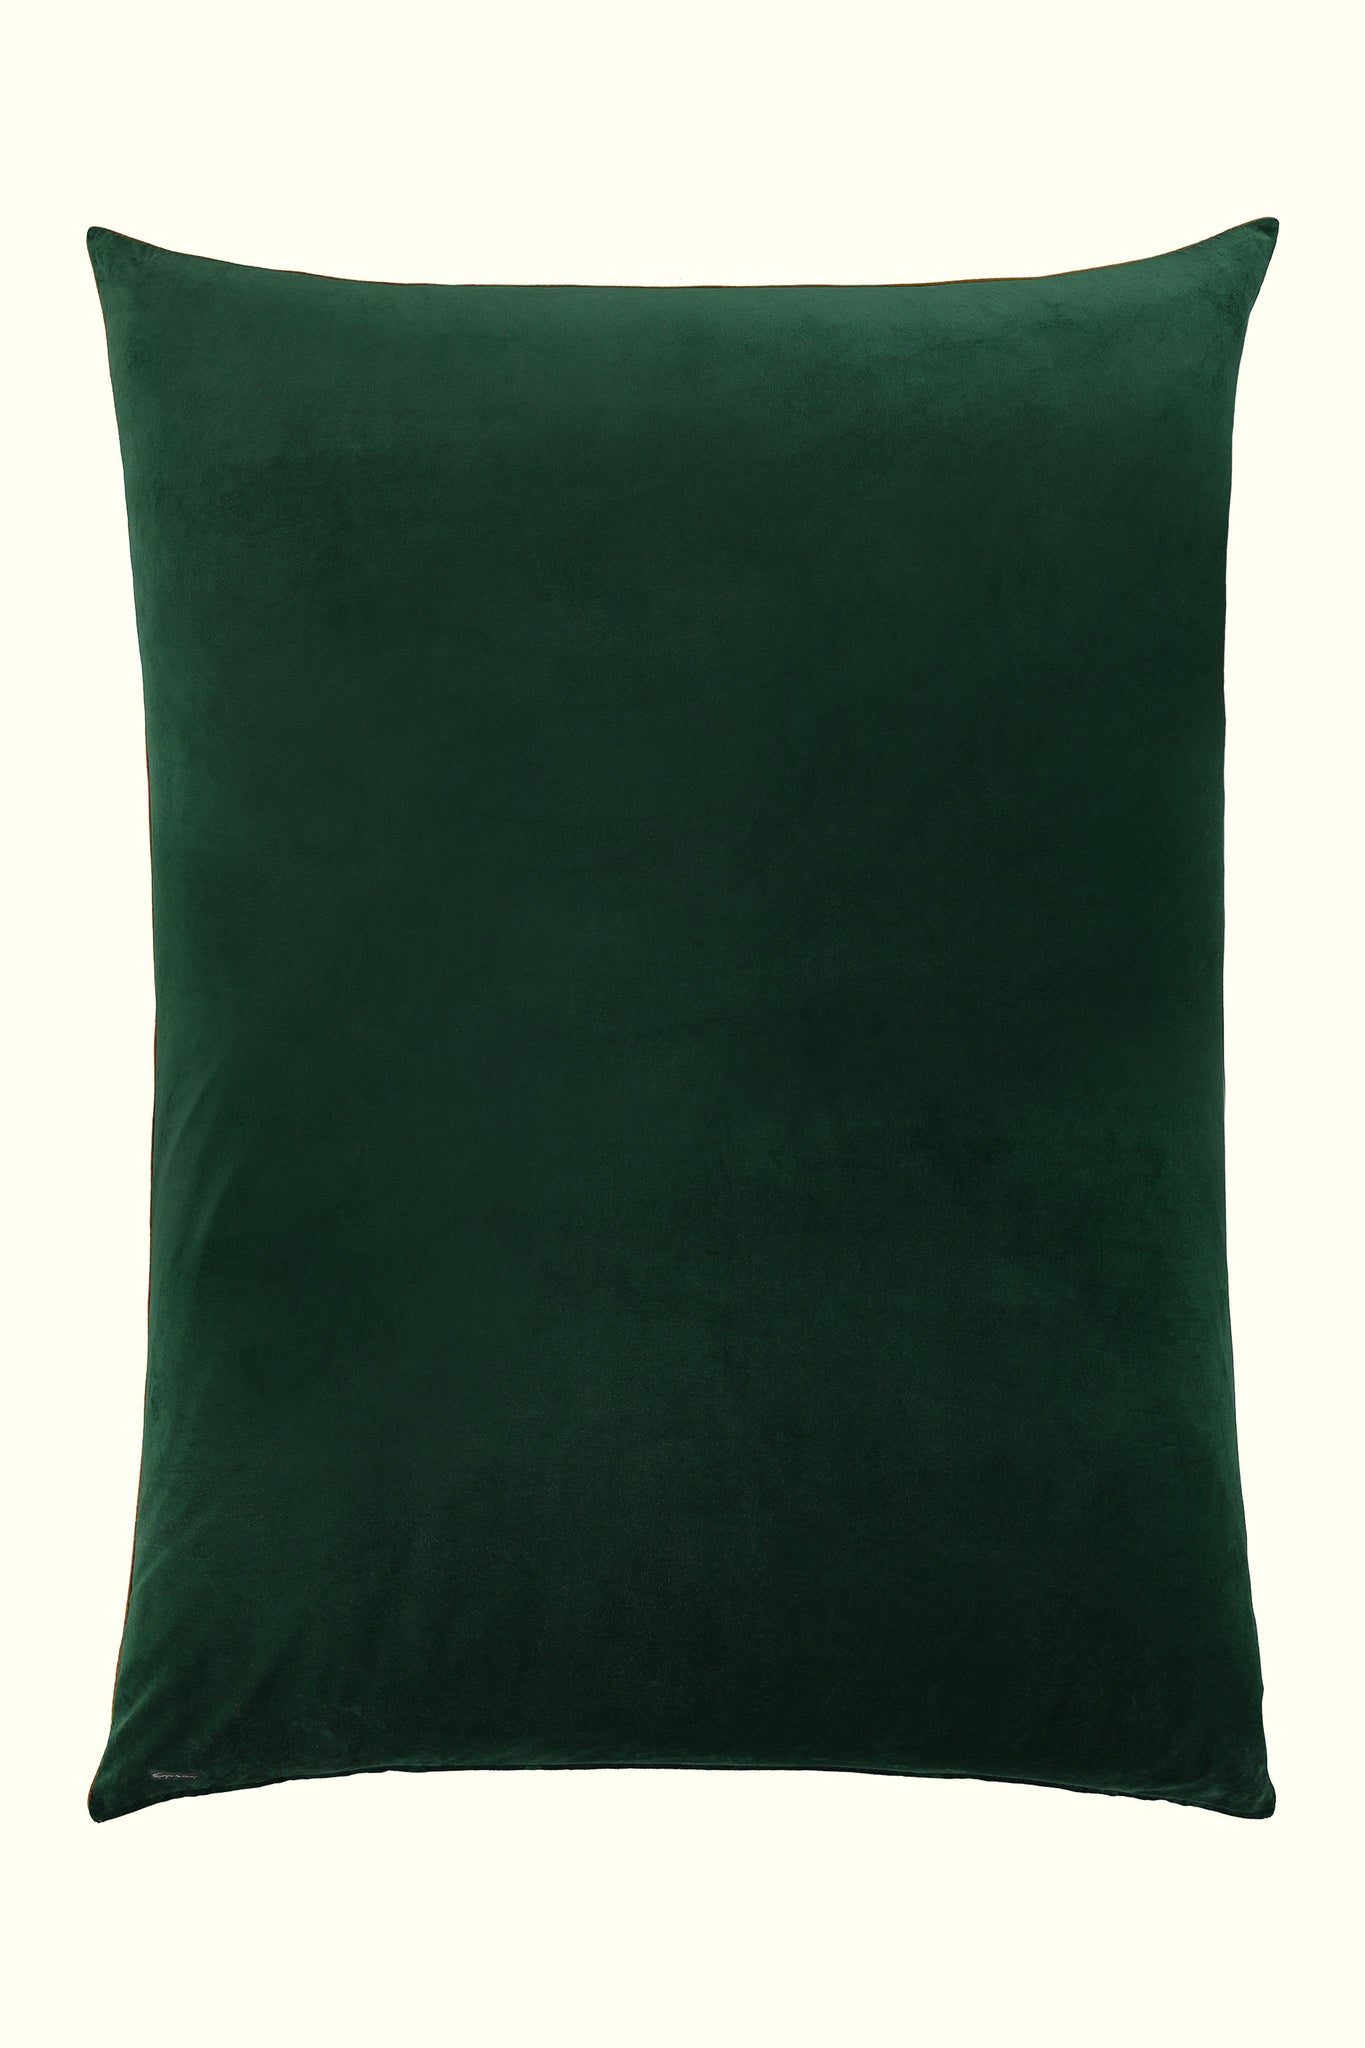 A luxury British cotton velvet large floor pillow by GVE in olive Dune print design.